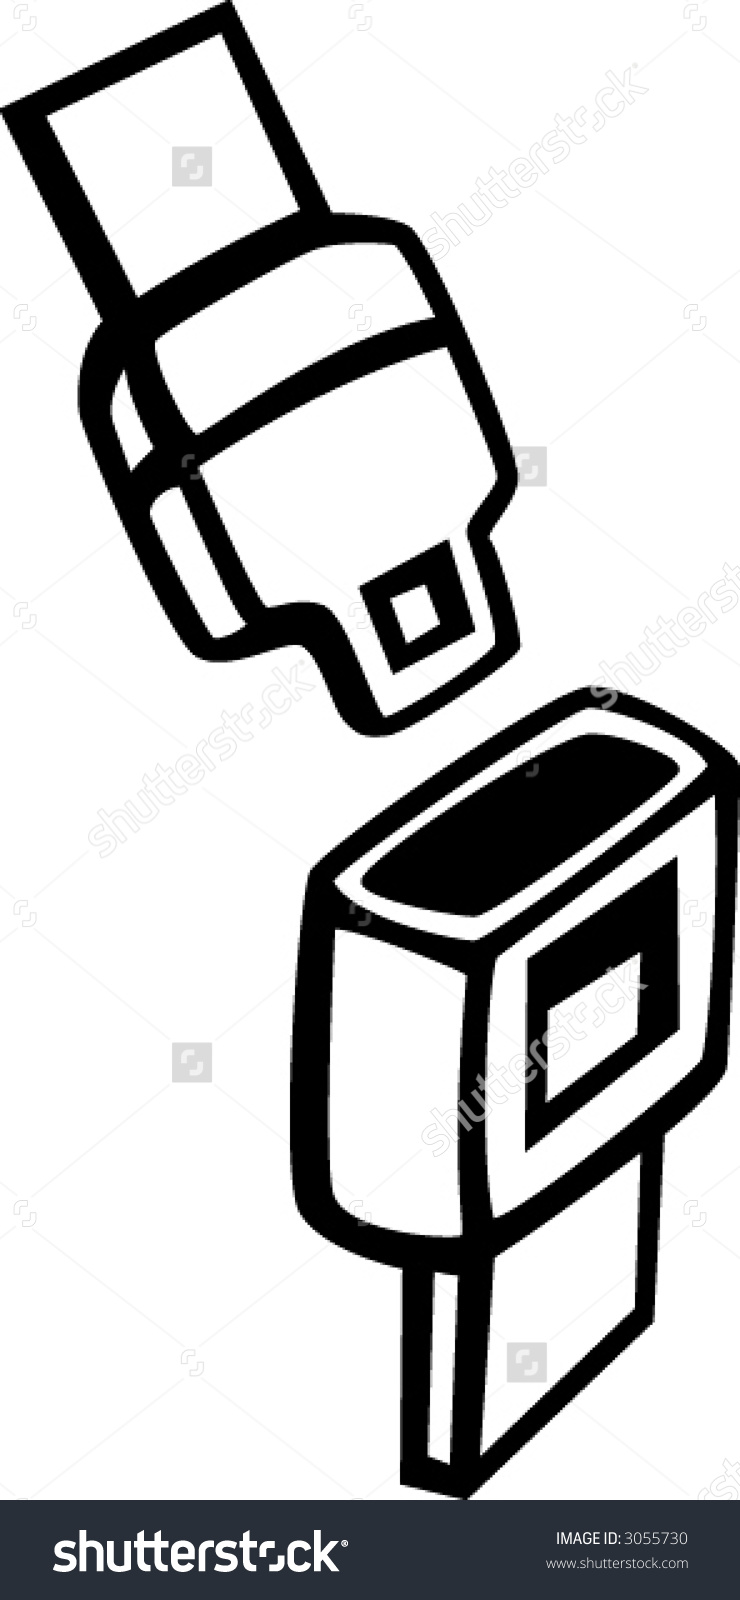 Seat belts clipart image library library Download seat belts clip art clipart Seat belt Clip art image library library